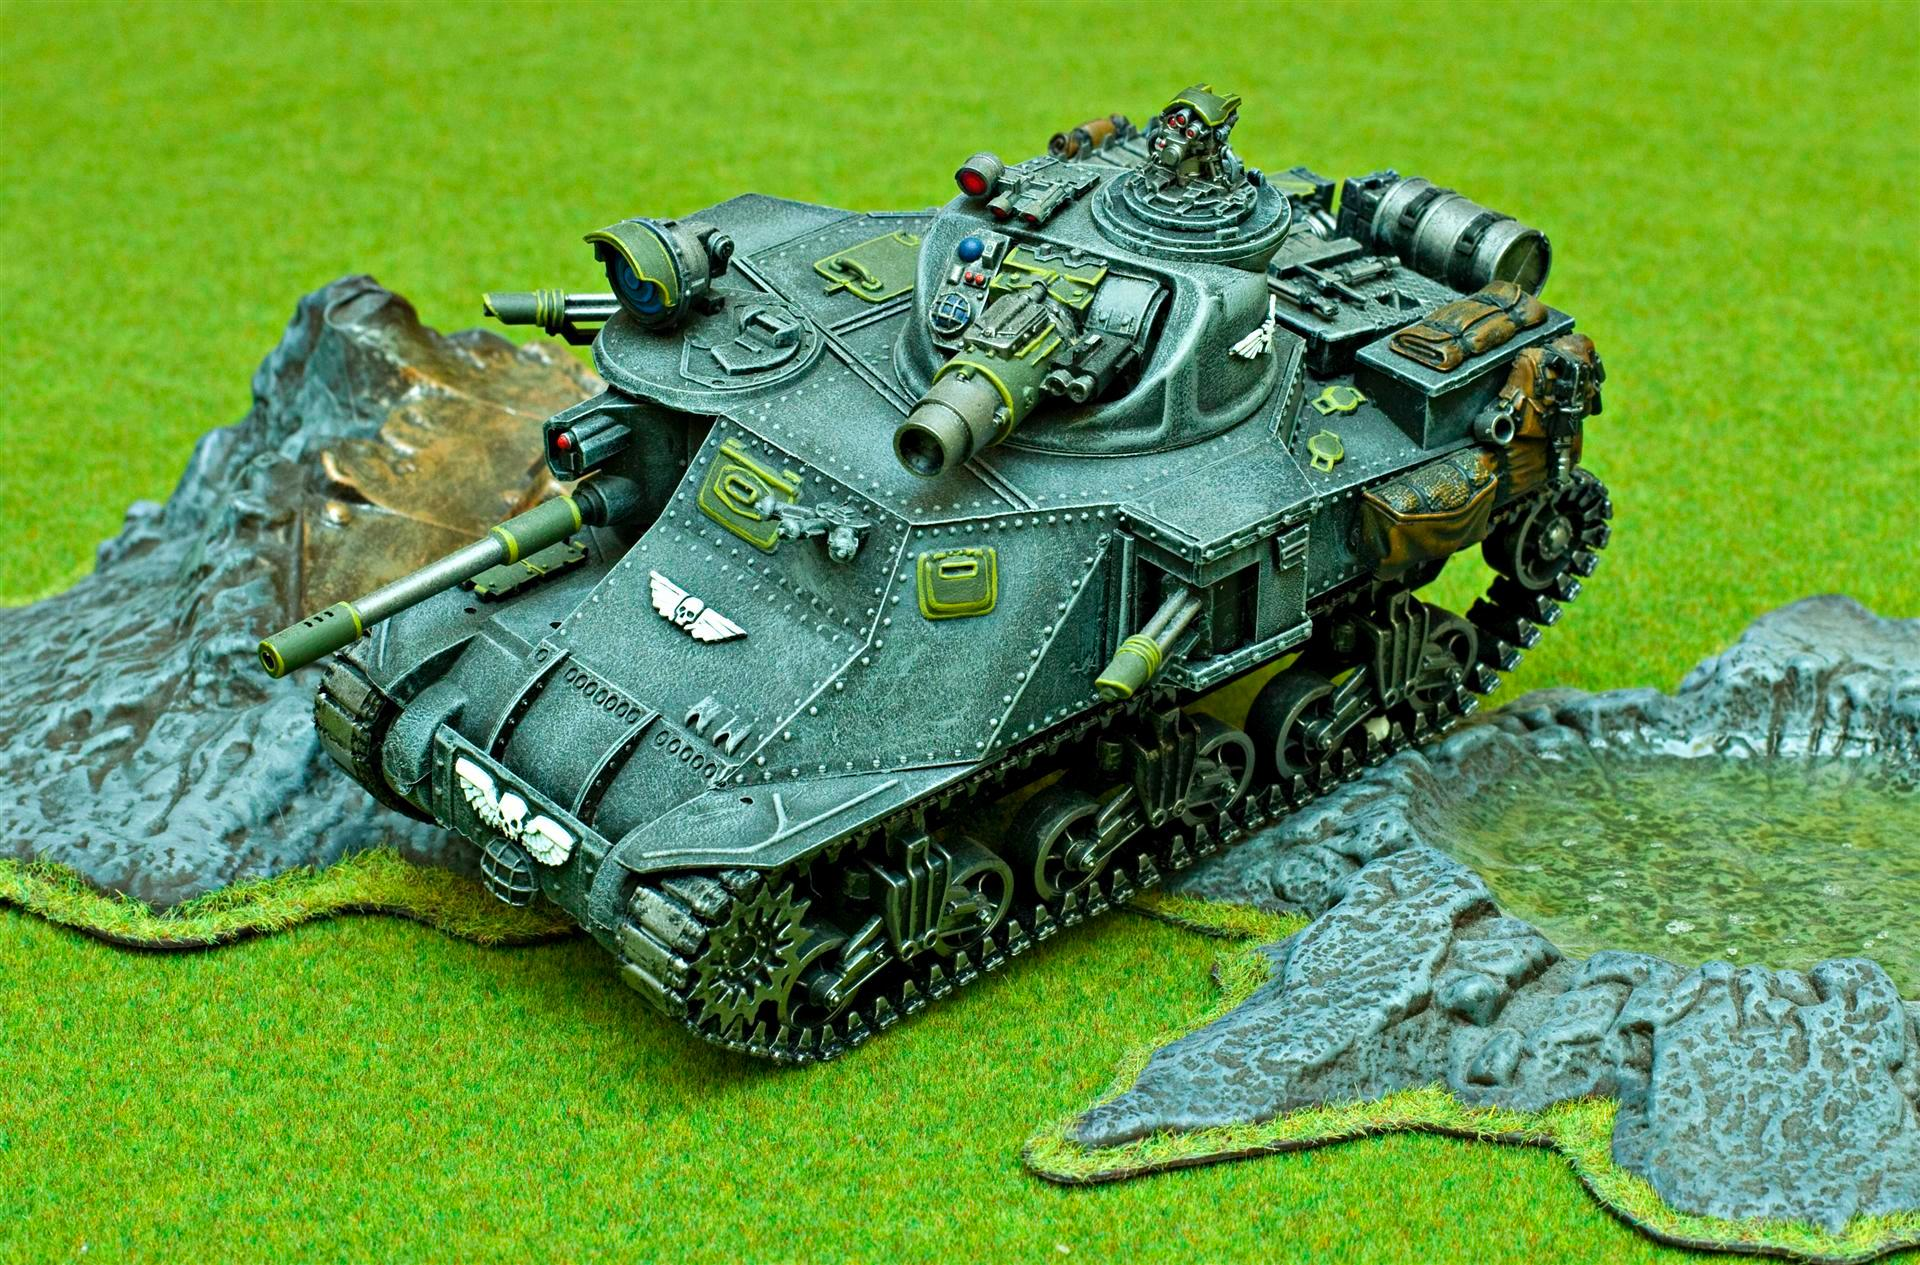 Apocalypse, Army, Autocannon, Battlecannon, Conversion, Count As, Gaming Mat, Green, Grey, Guard, Imperial, Imperial Guard, Imperials, Malcador, Super-heavy, Tank, Treads